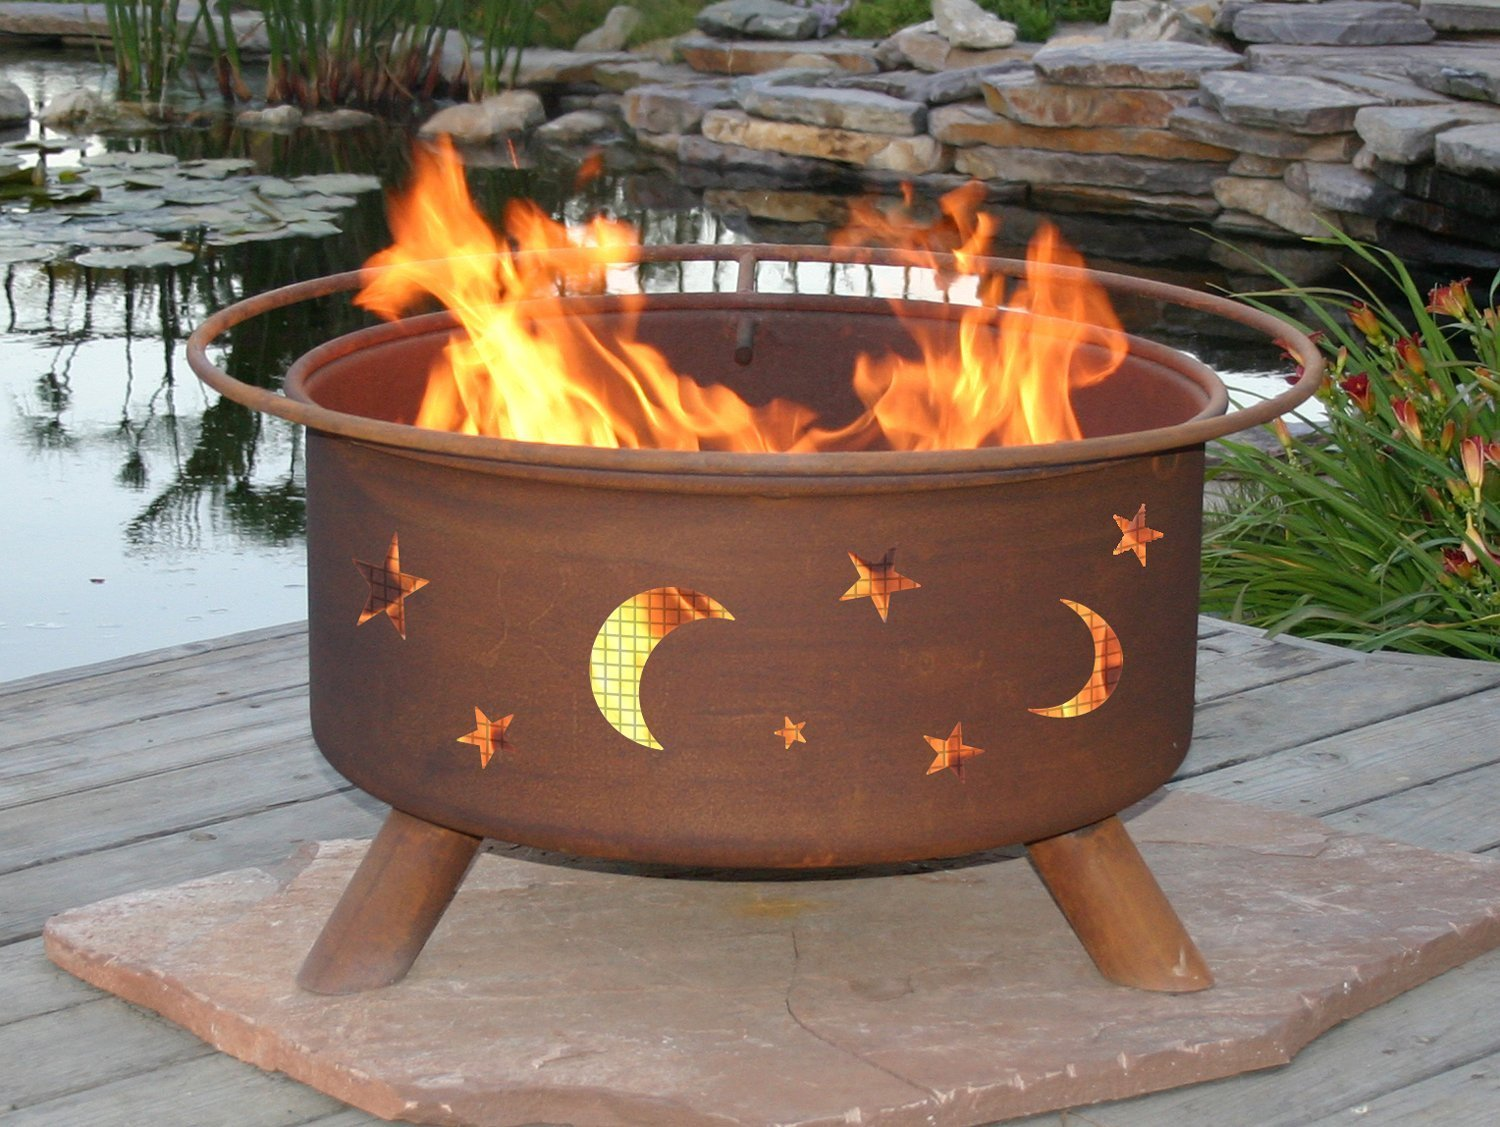 Amazon.com : Patina Products F100, 30 Inch Evening Sky Fire Pit F100 :  Garden & Outdoor - Amazon.com : Patina Products F100, 30 Inch Evening Sky Fire Pit F100